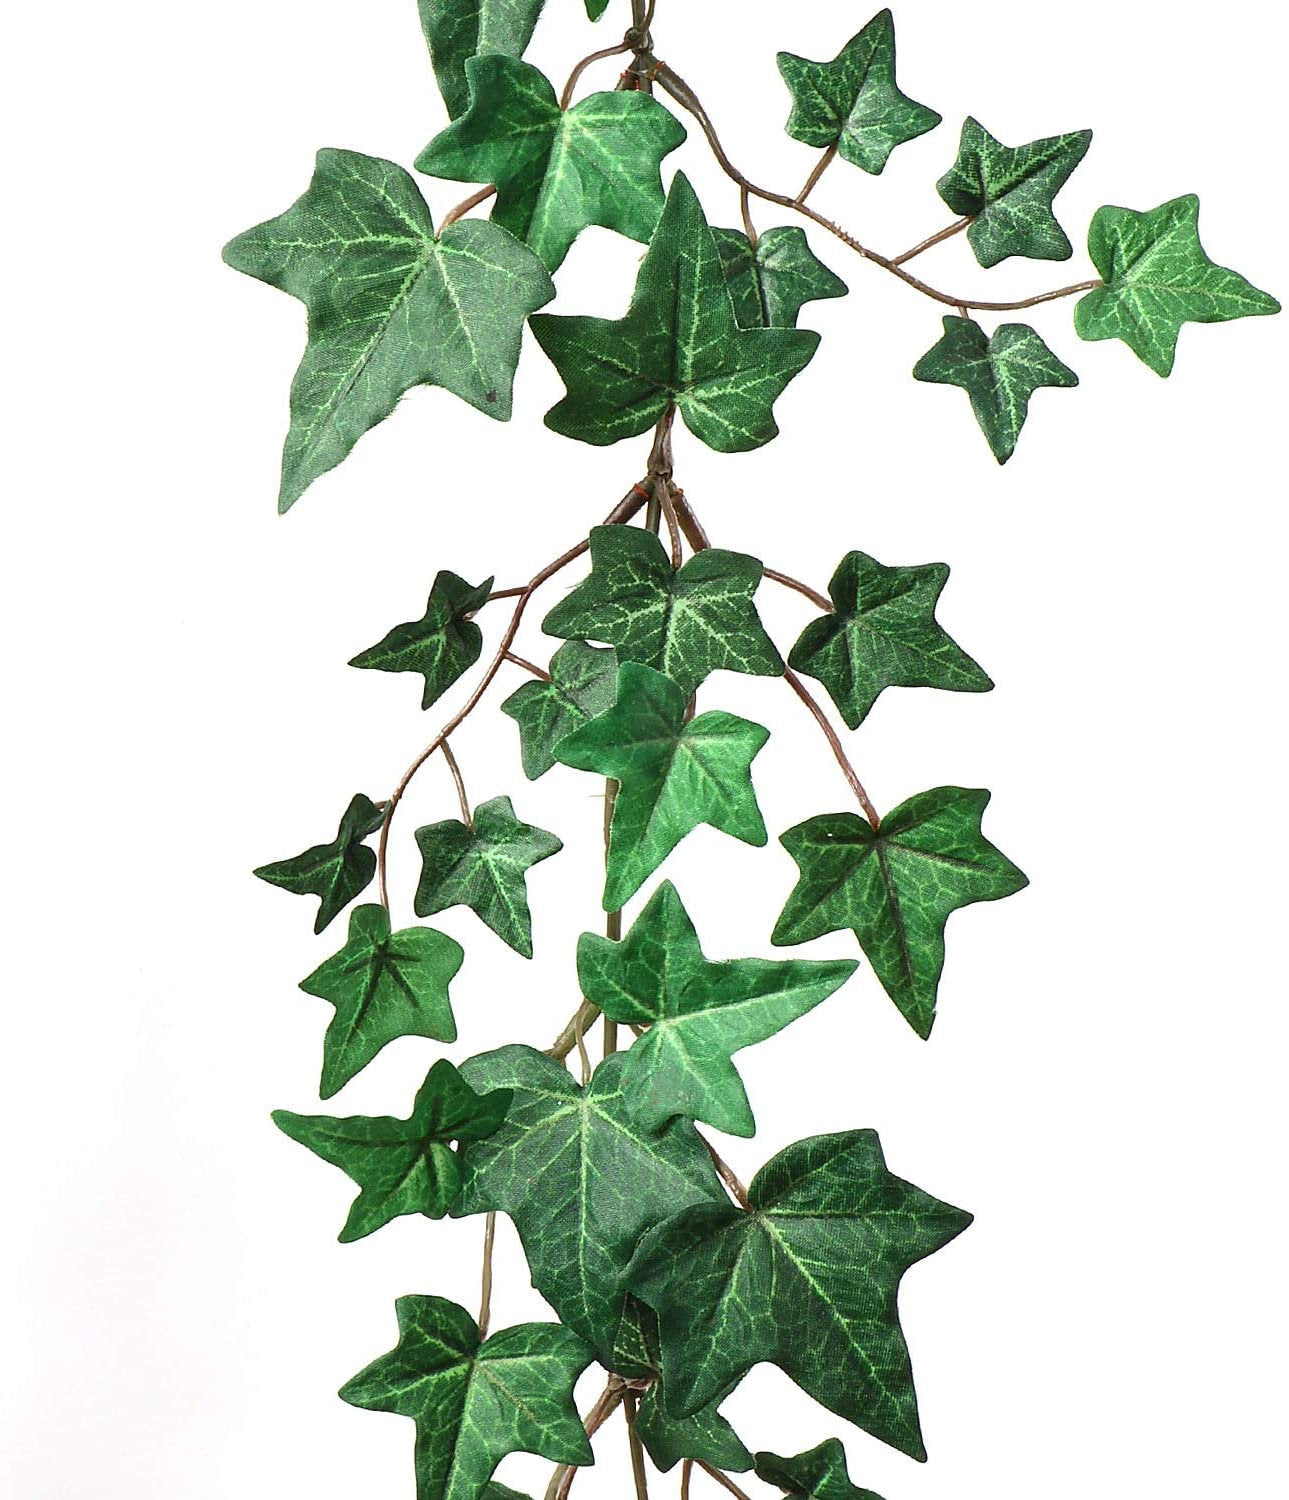 Green  Artificial 6 Foot Ivy Garland w/ 185 Leaves